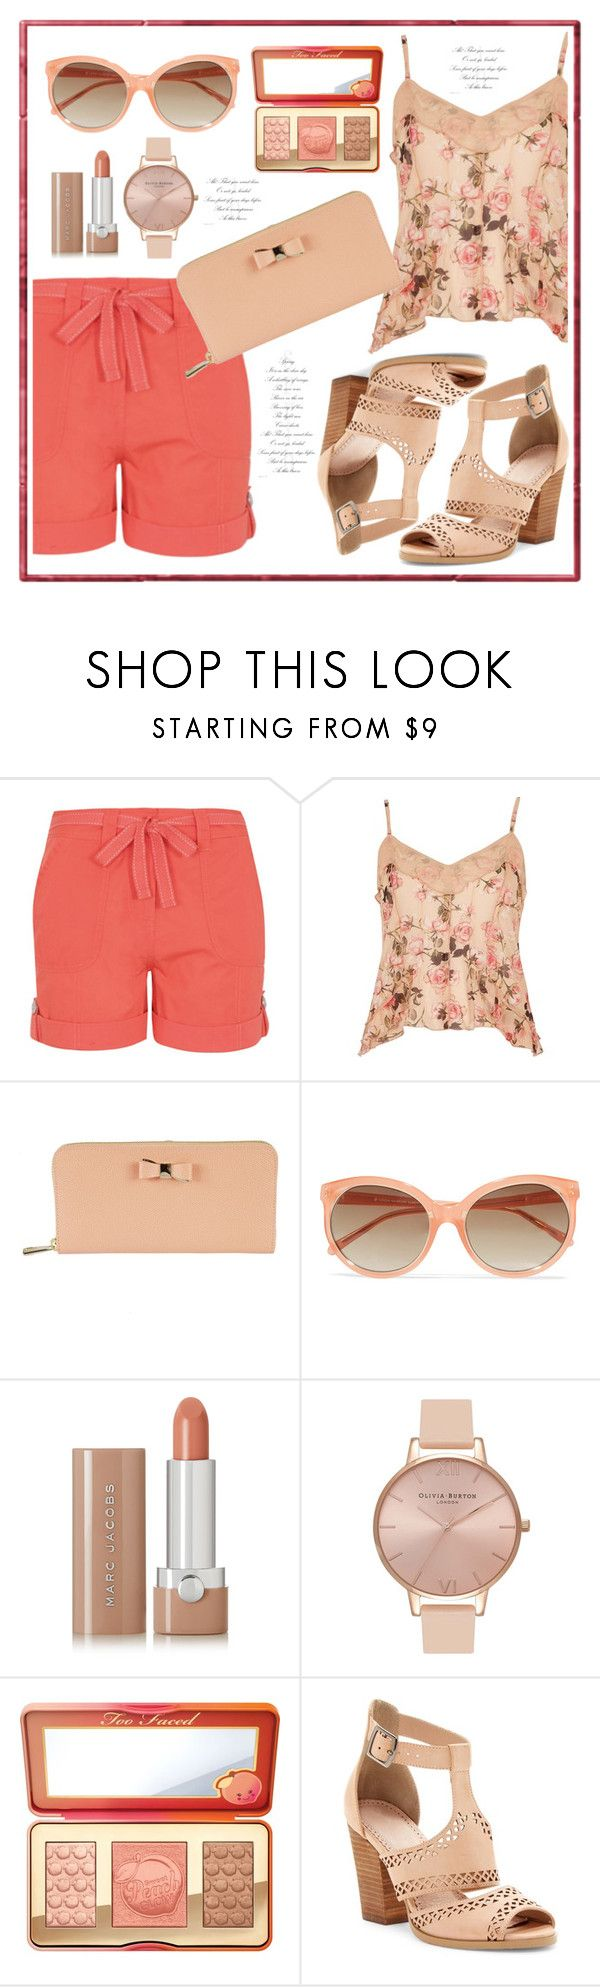 """""""peach shorts"""" by paperdolldesigner ❤ liked on Polyvore featuring George, River Island, Furla, Linda Farrow, Marc Jacobs, Olivia Burton, Too Faced Cosmetics and Restricted"""